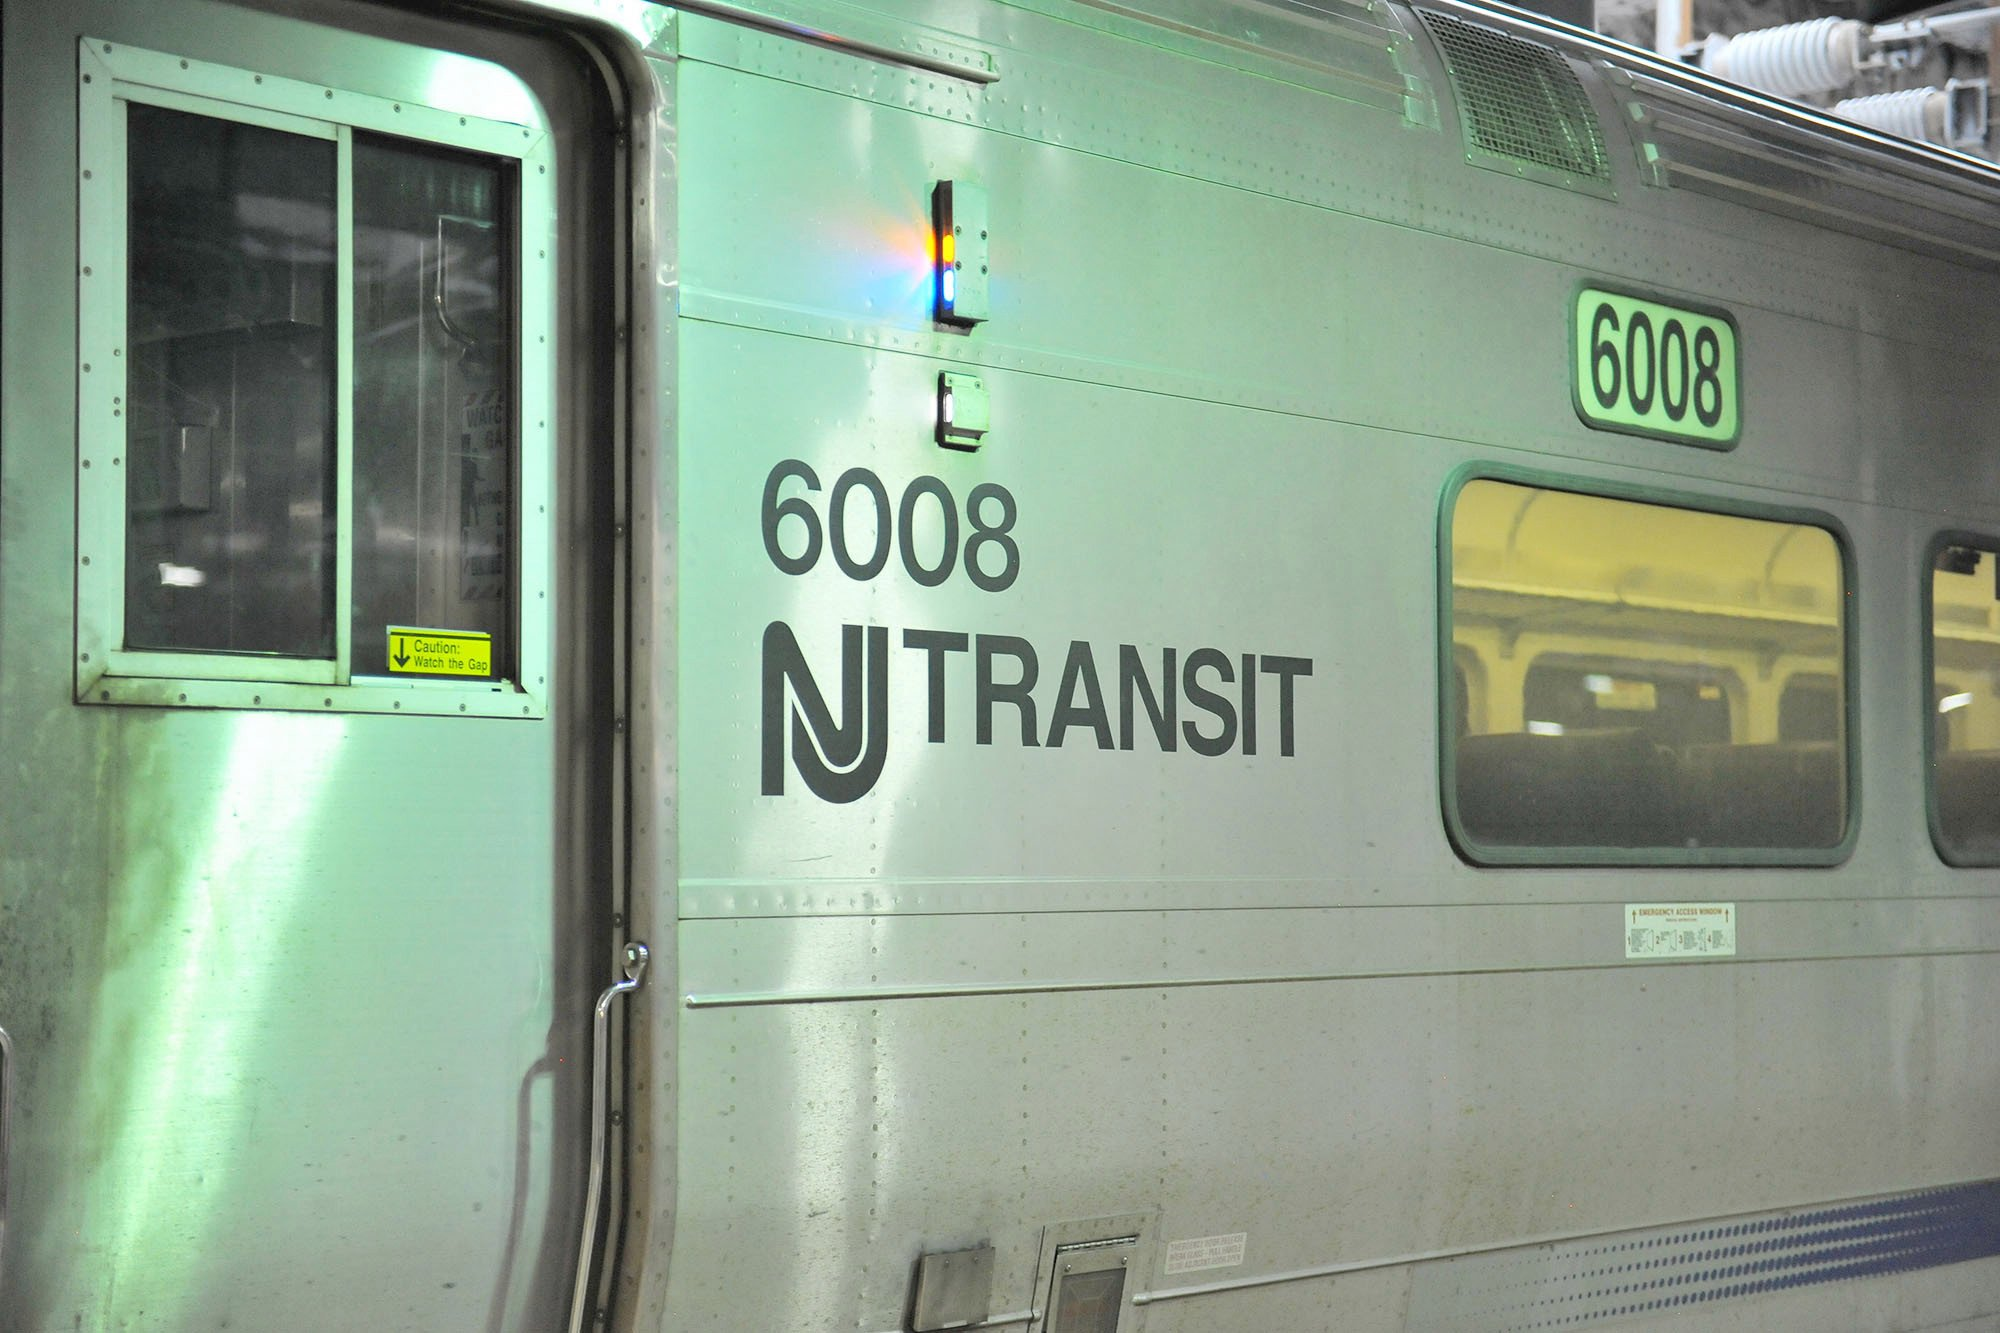 NJ Transit worker alerted riders that ICE agents were 'looking for illegals' on train